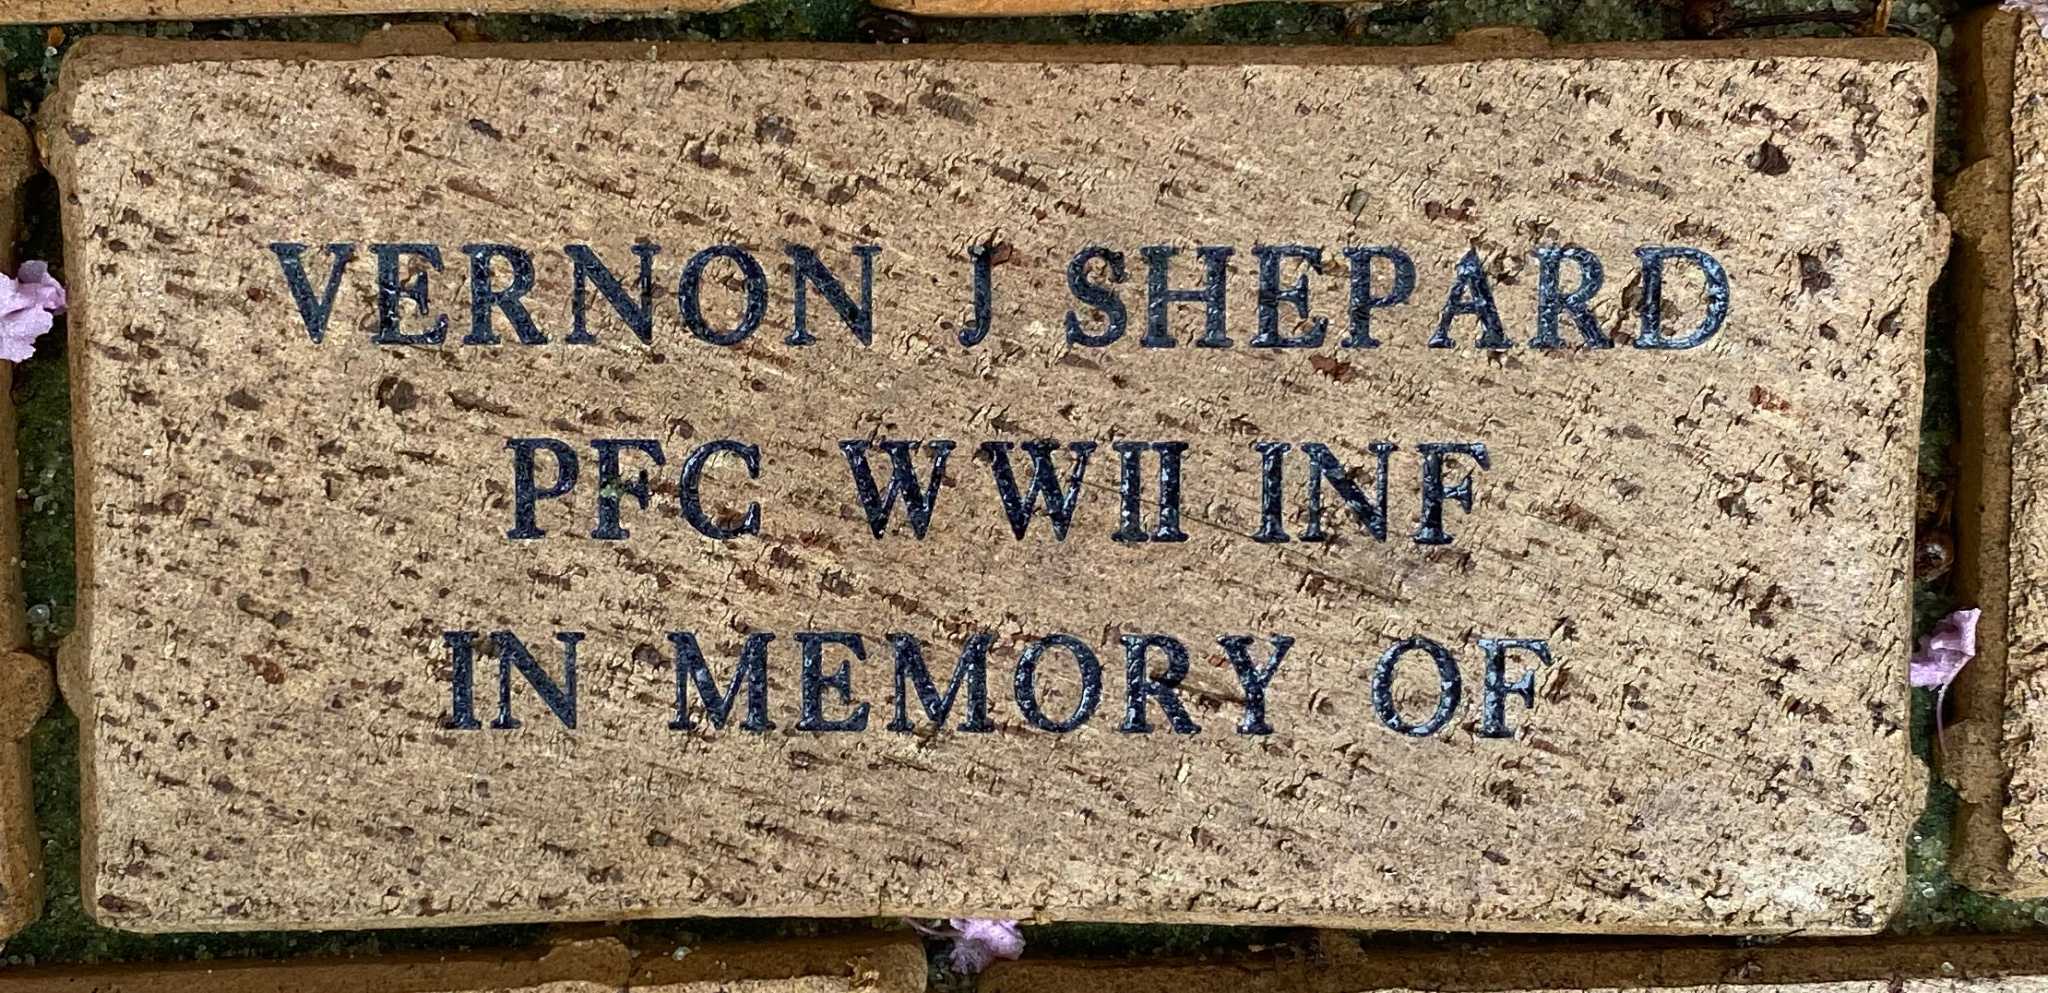 VERNON J. SHEPARD PFC. WWII INF IN MEMORY OF